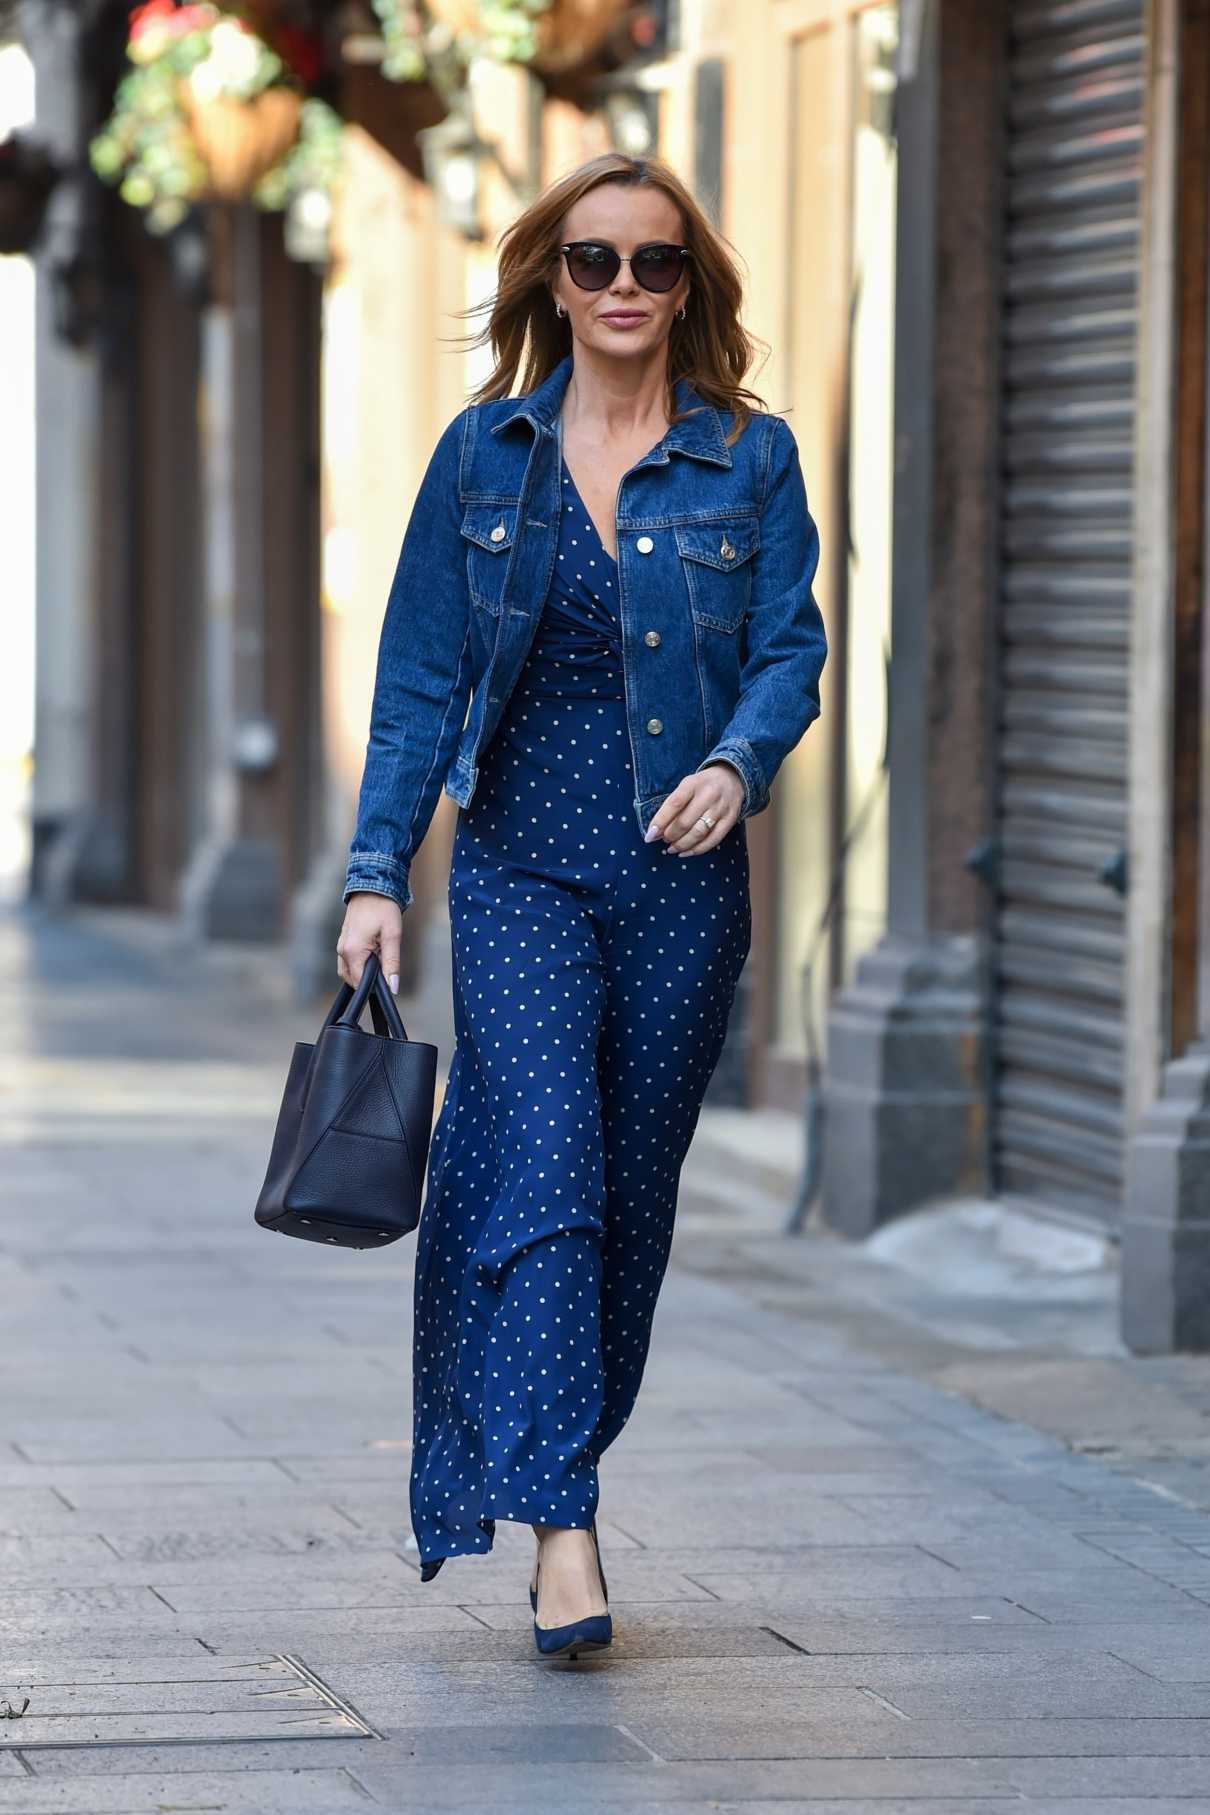 Amanda Holden in a Blue Outfit